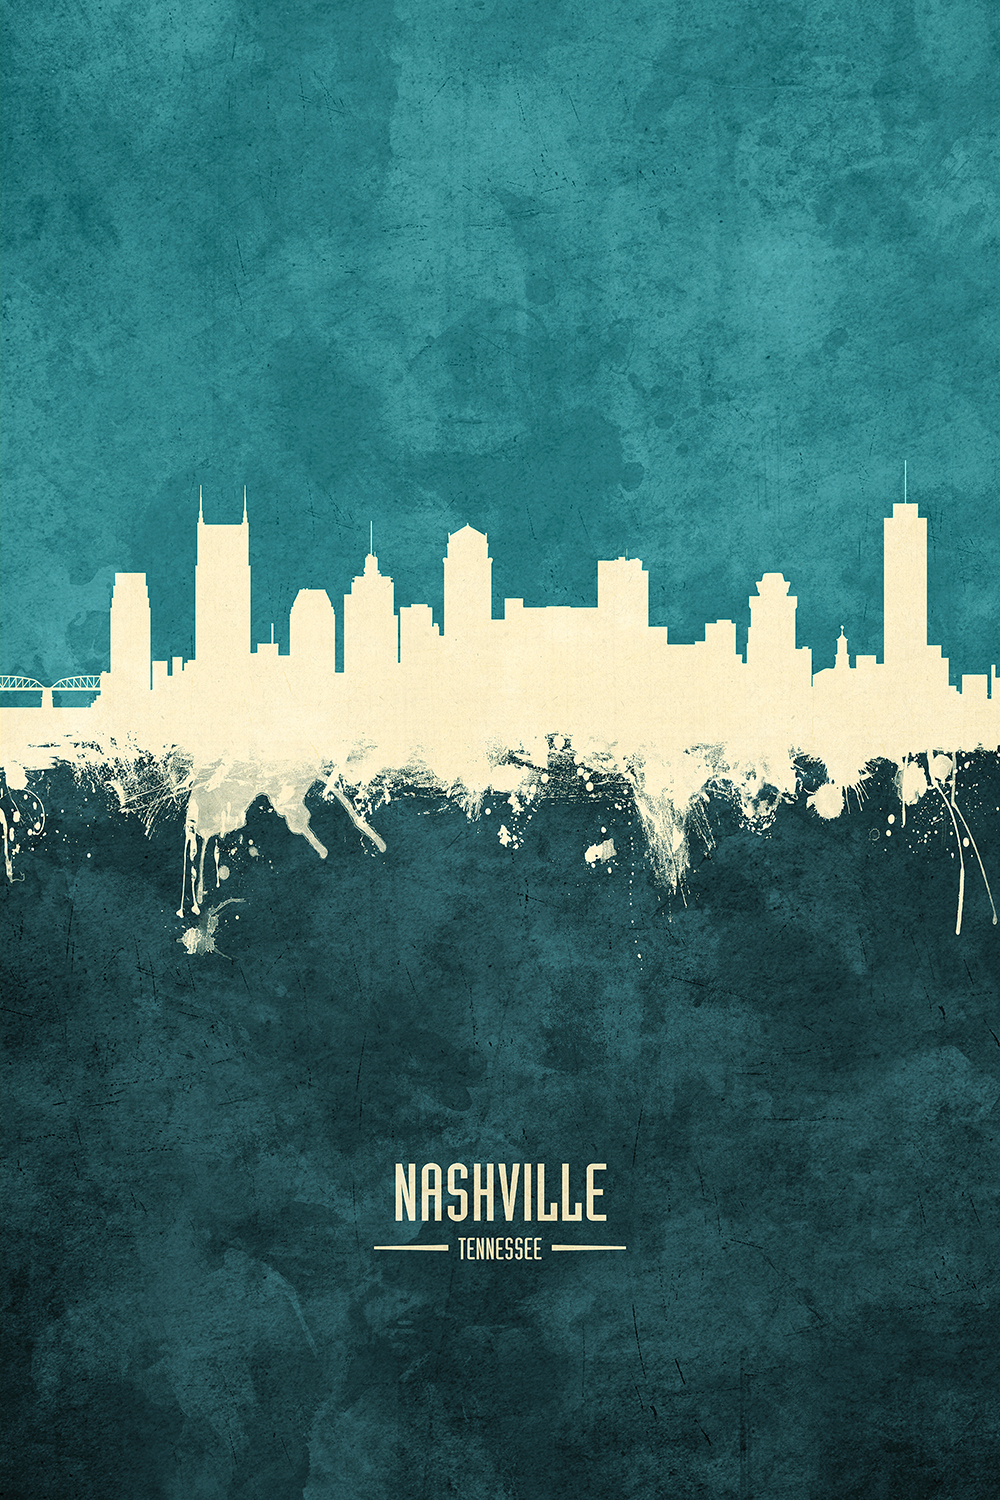 Outline of Nashville skyline on a teal background with text that says Nashville Tennessee